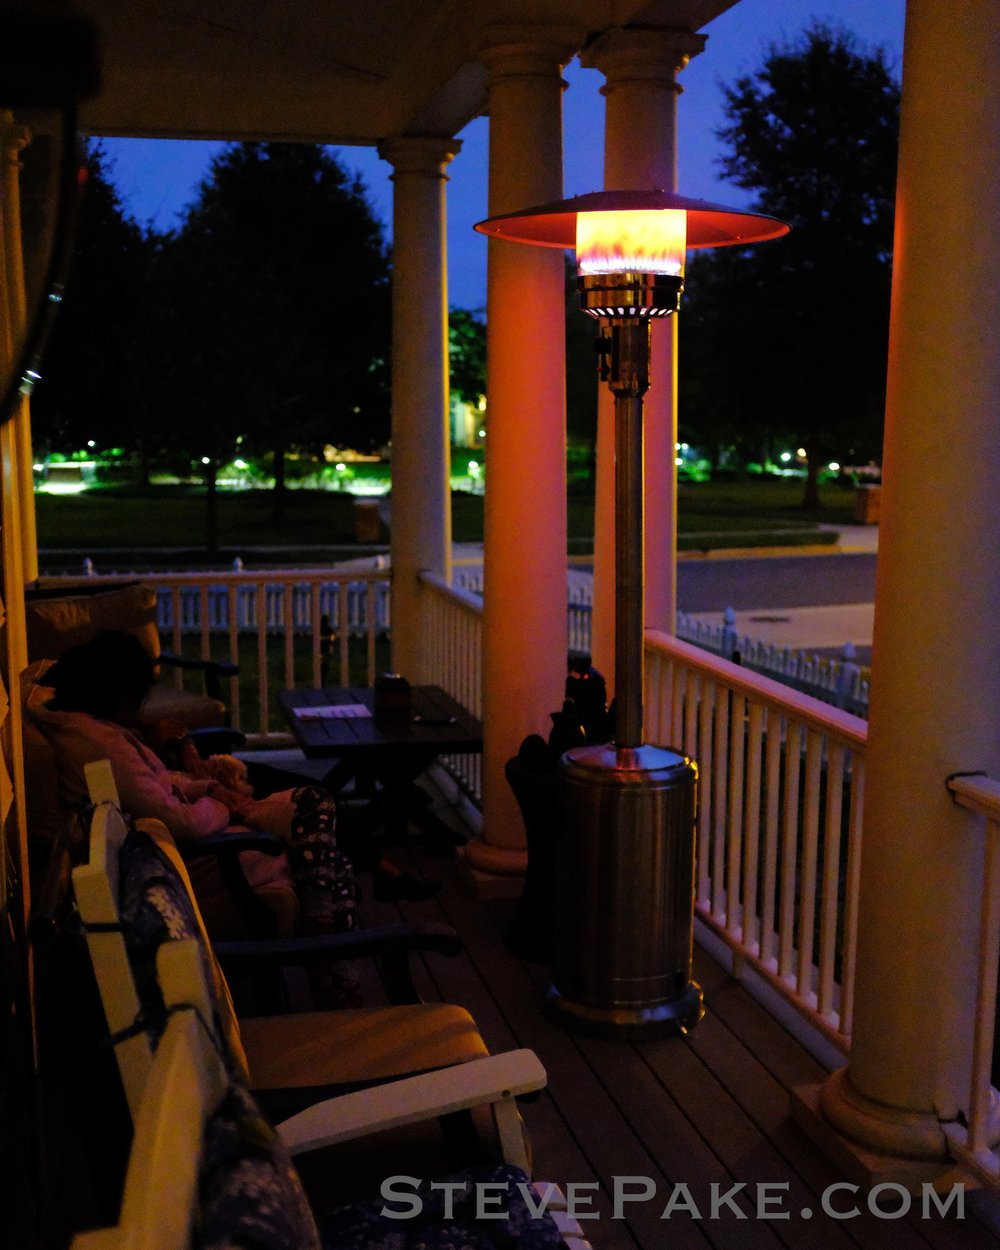 Our new propane fueled patio heater is awesome, thanks Mom and Dad!